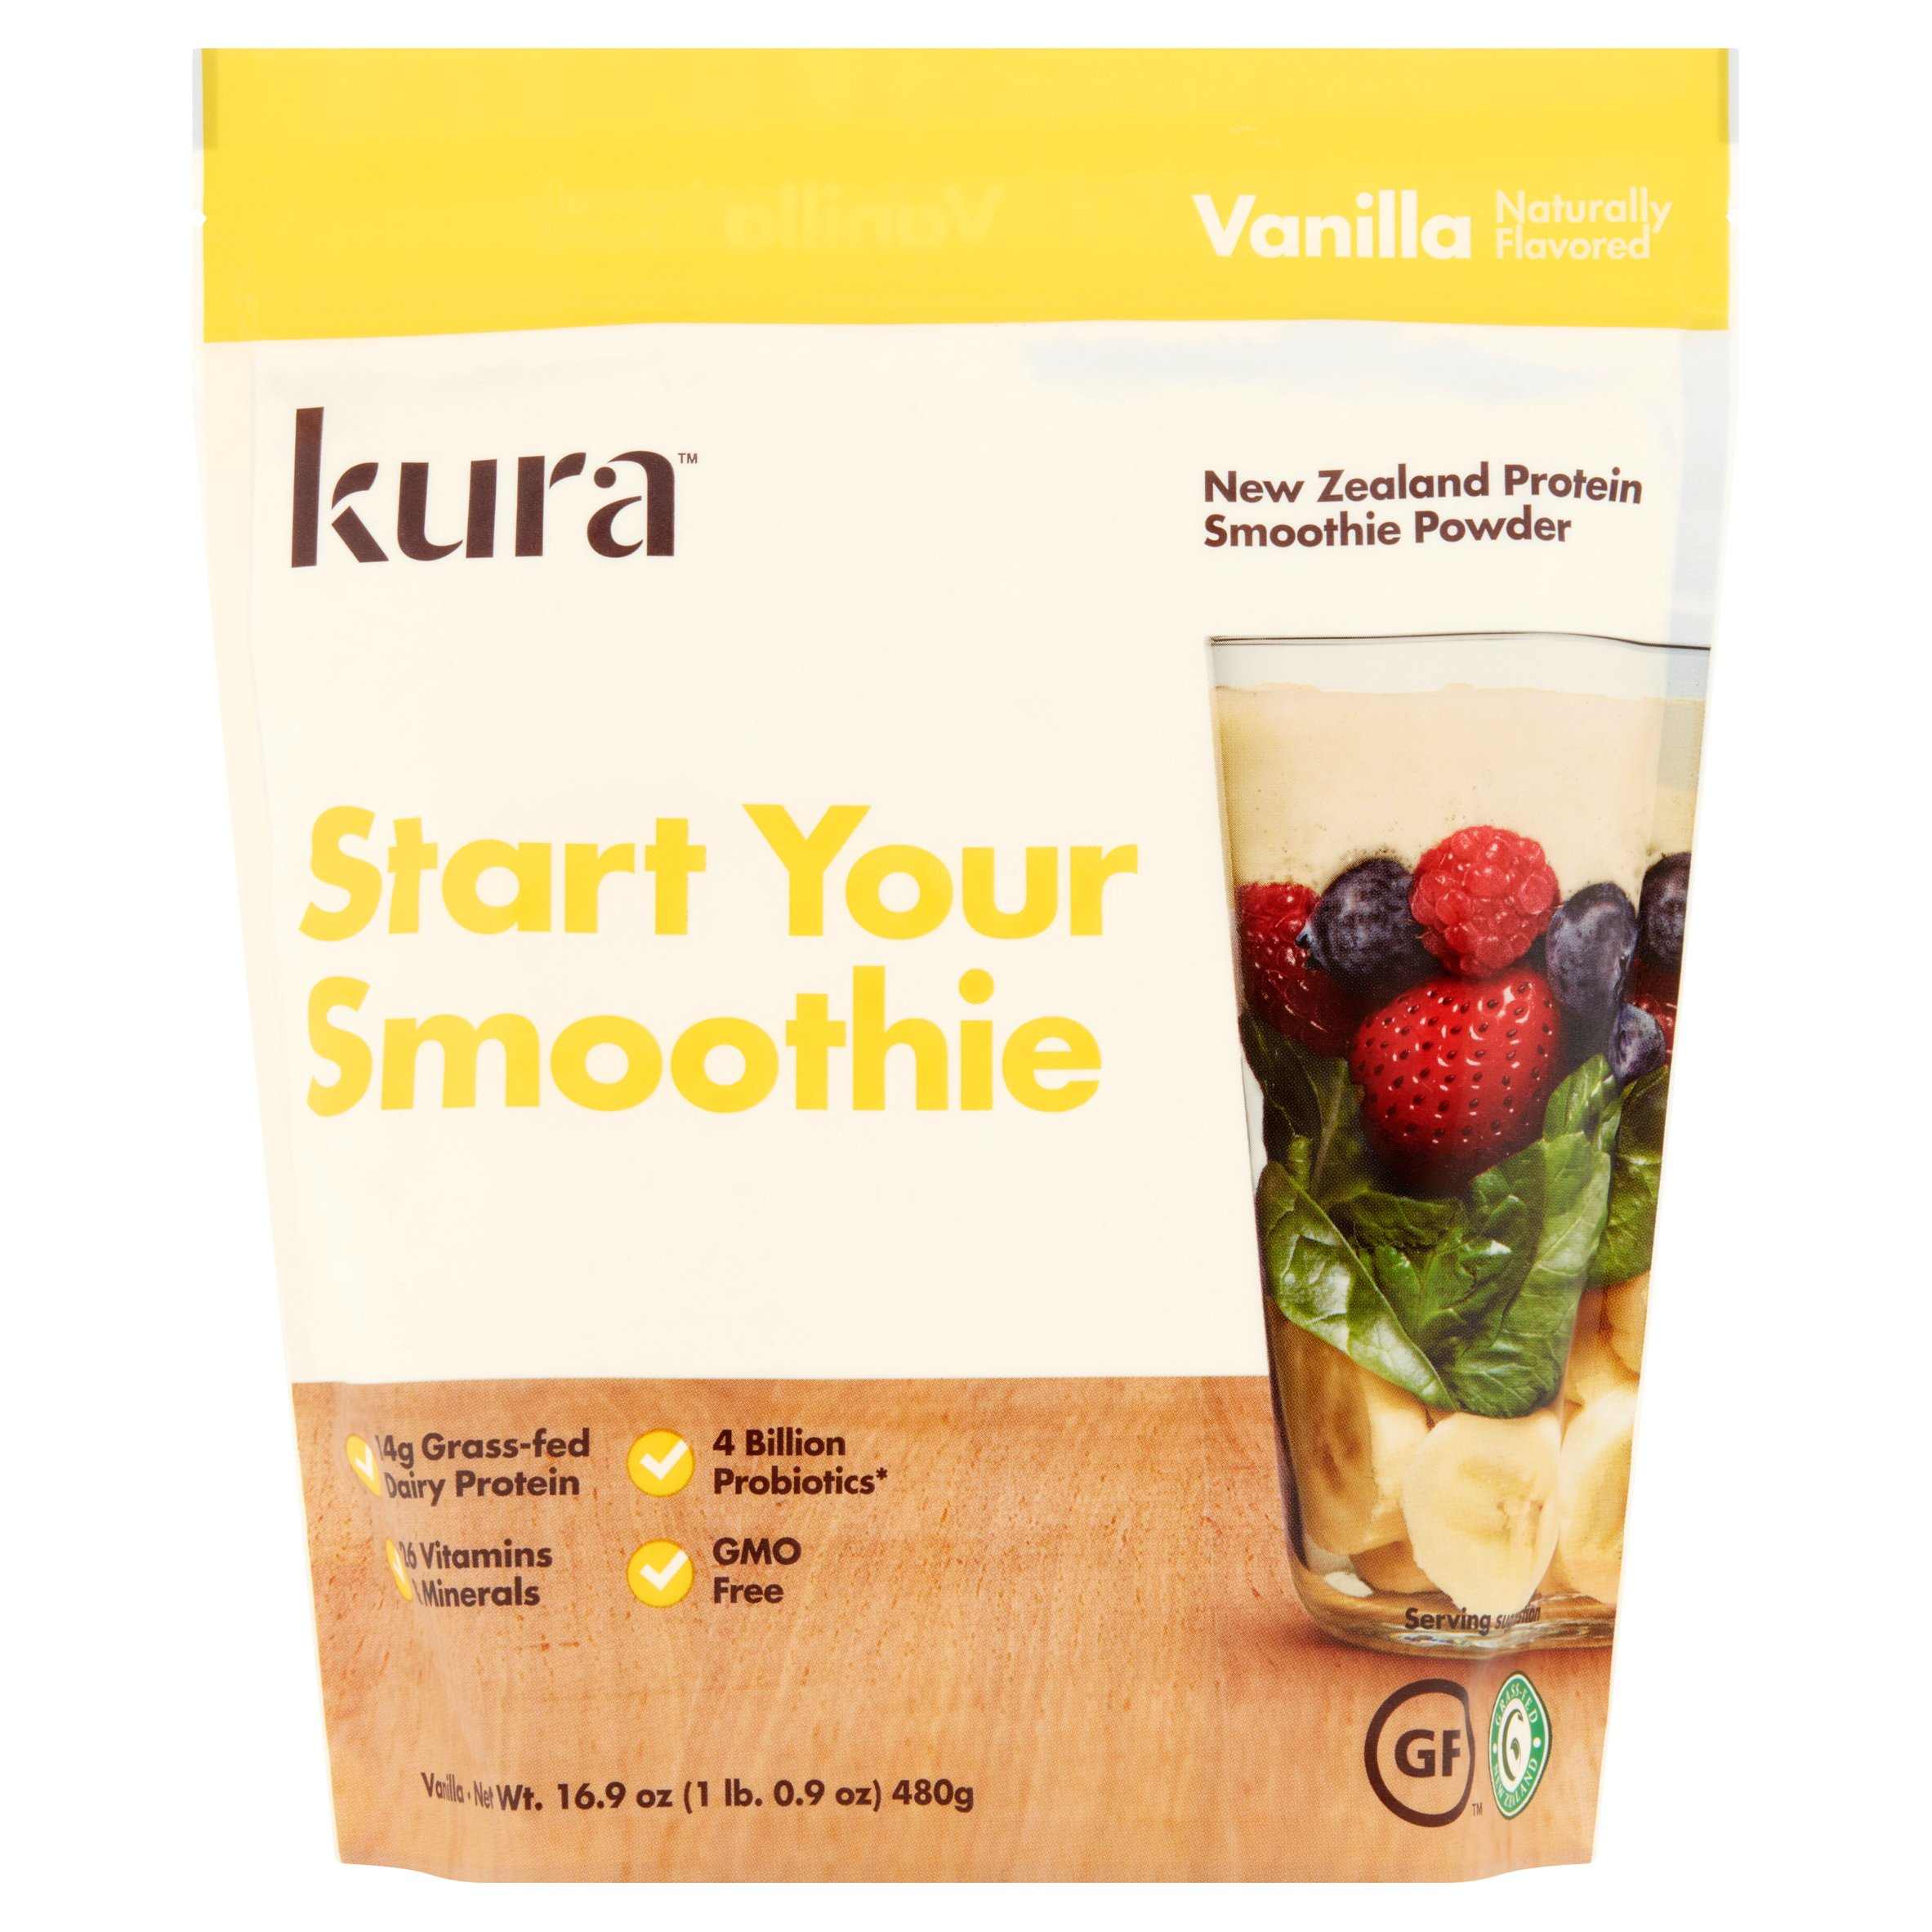 Kura Vanilla New Zealand Protein Smoothie Powder, 16.9 oz